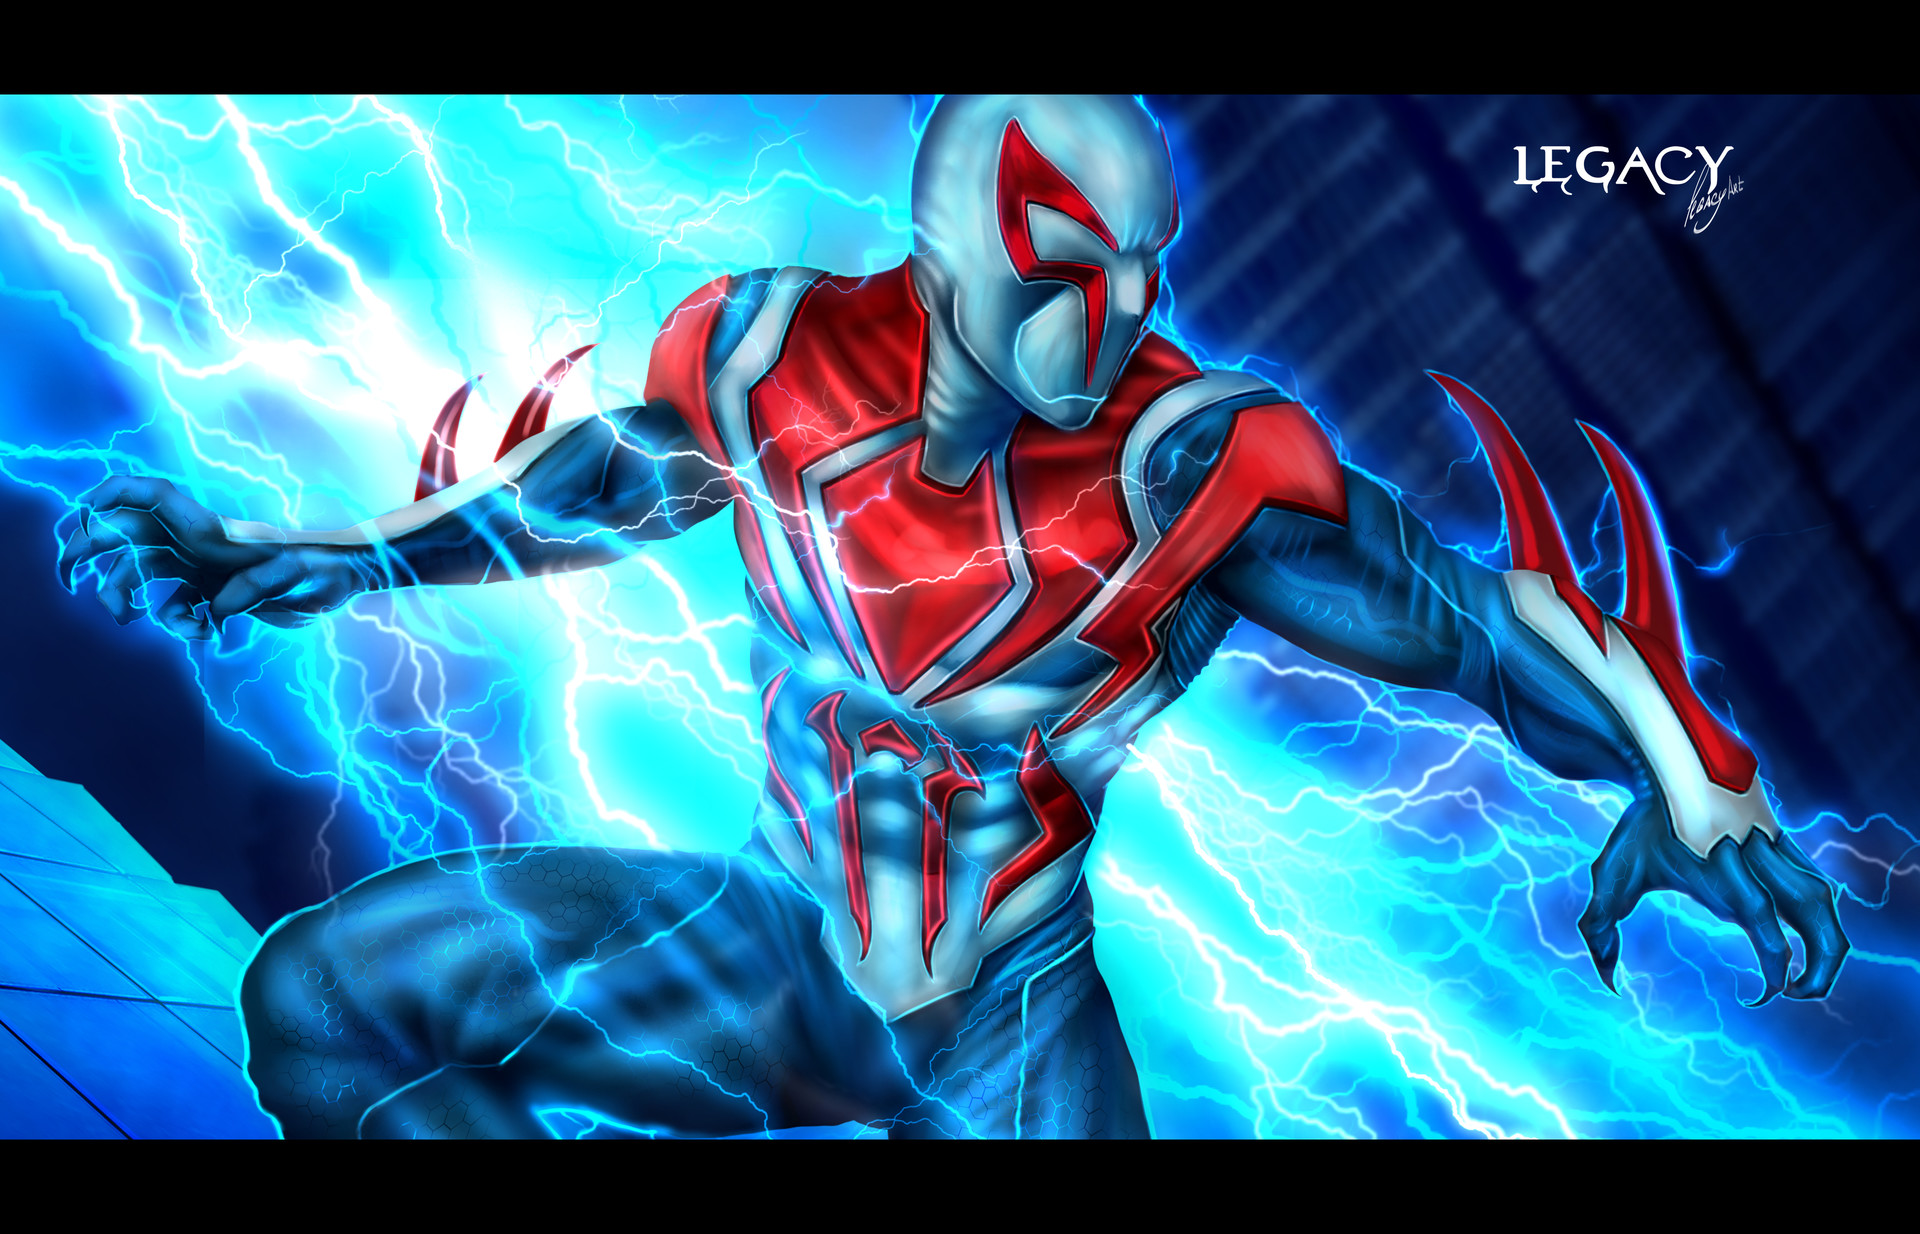 Spiderman 2099: All New All Different Spider-man 2099, Legacy